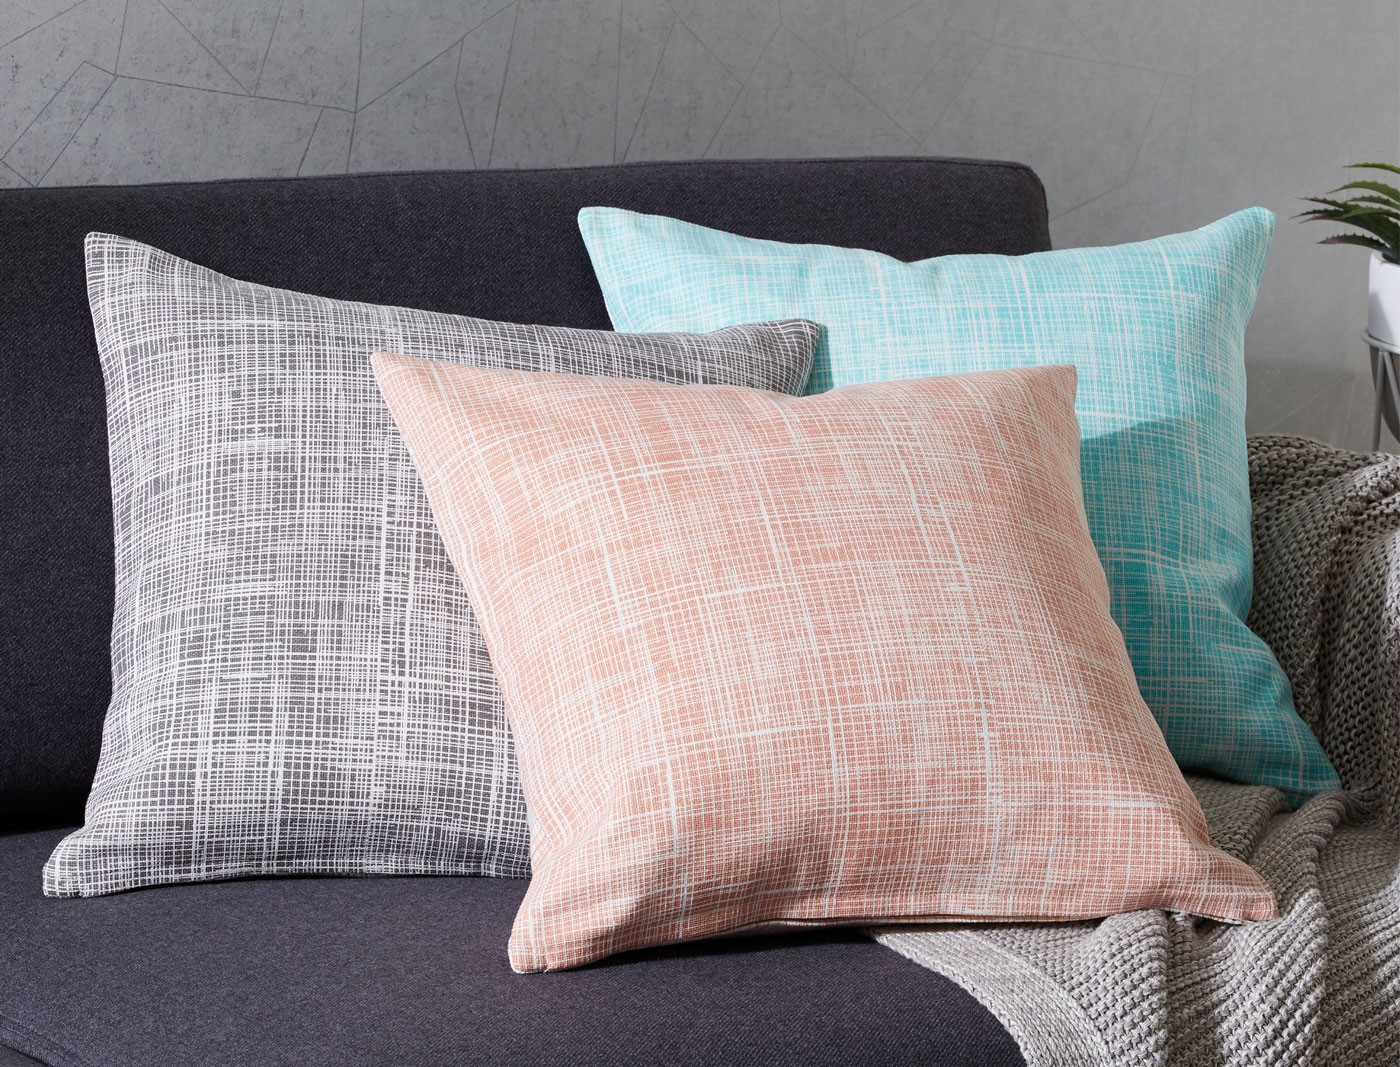 Looking for your foam cushions – Eco World